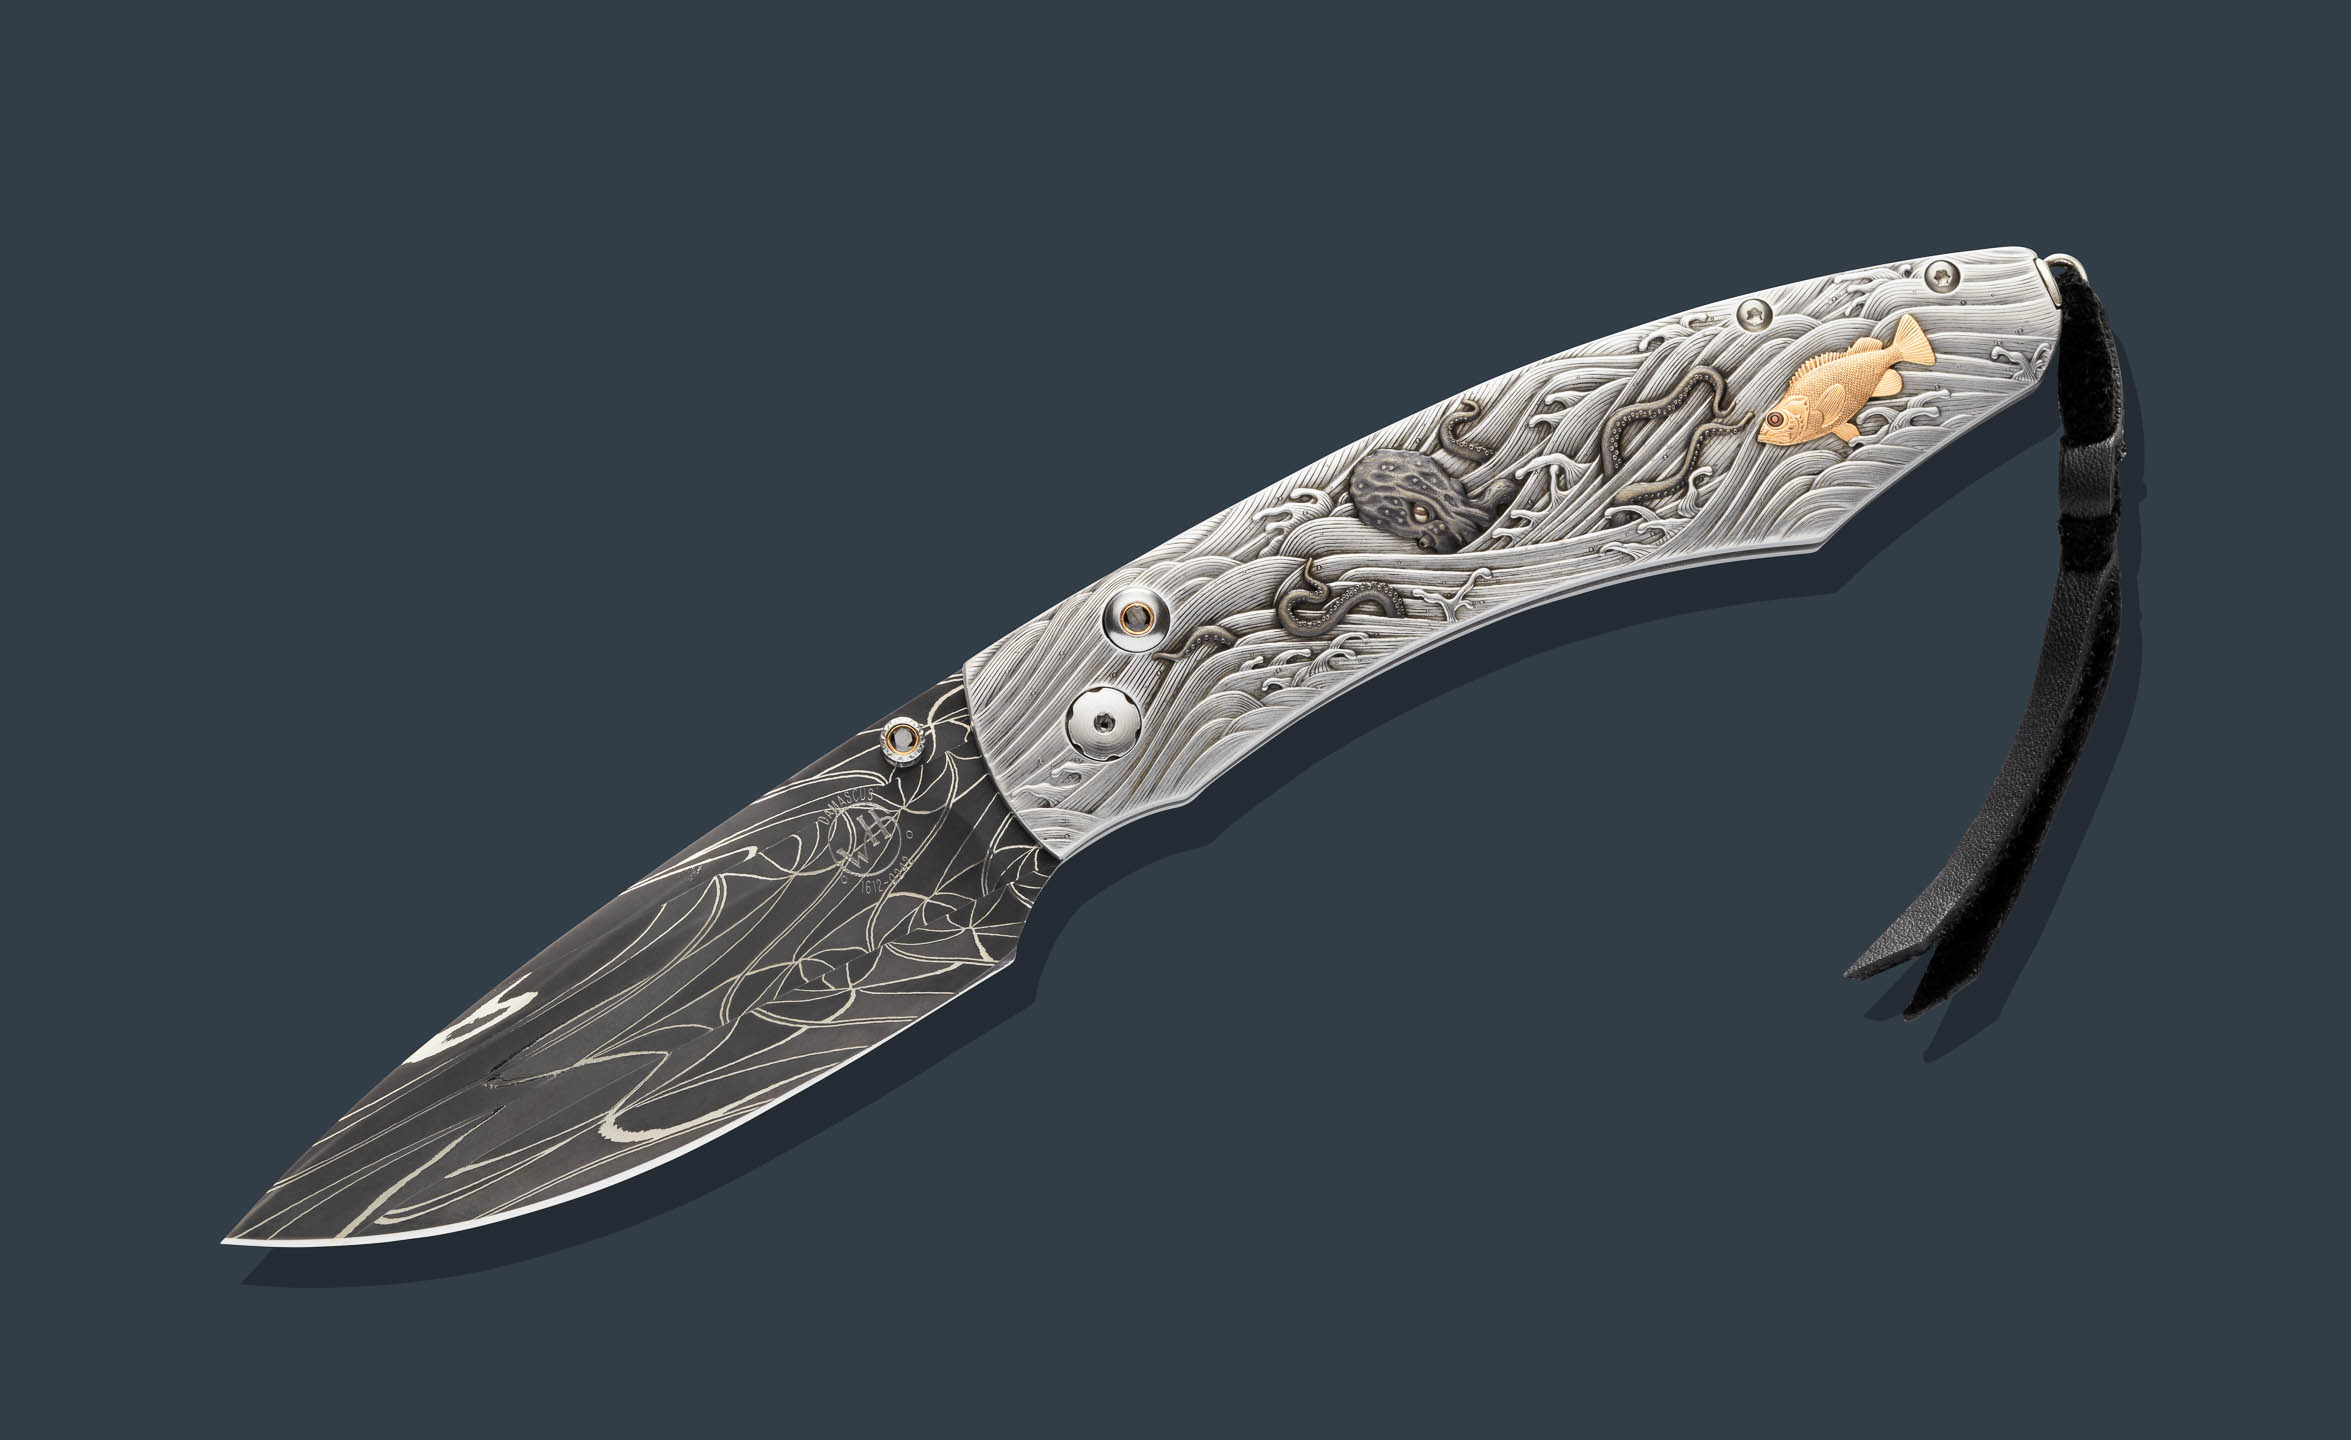 William Henry pocketknife